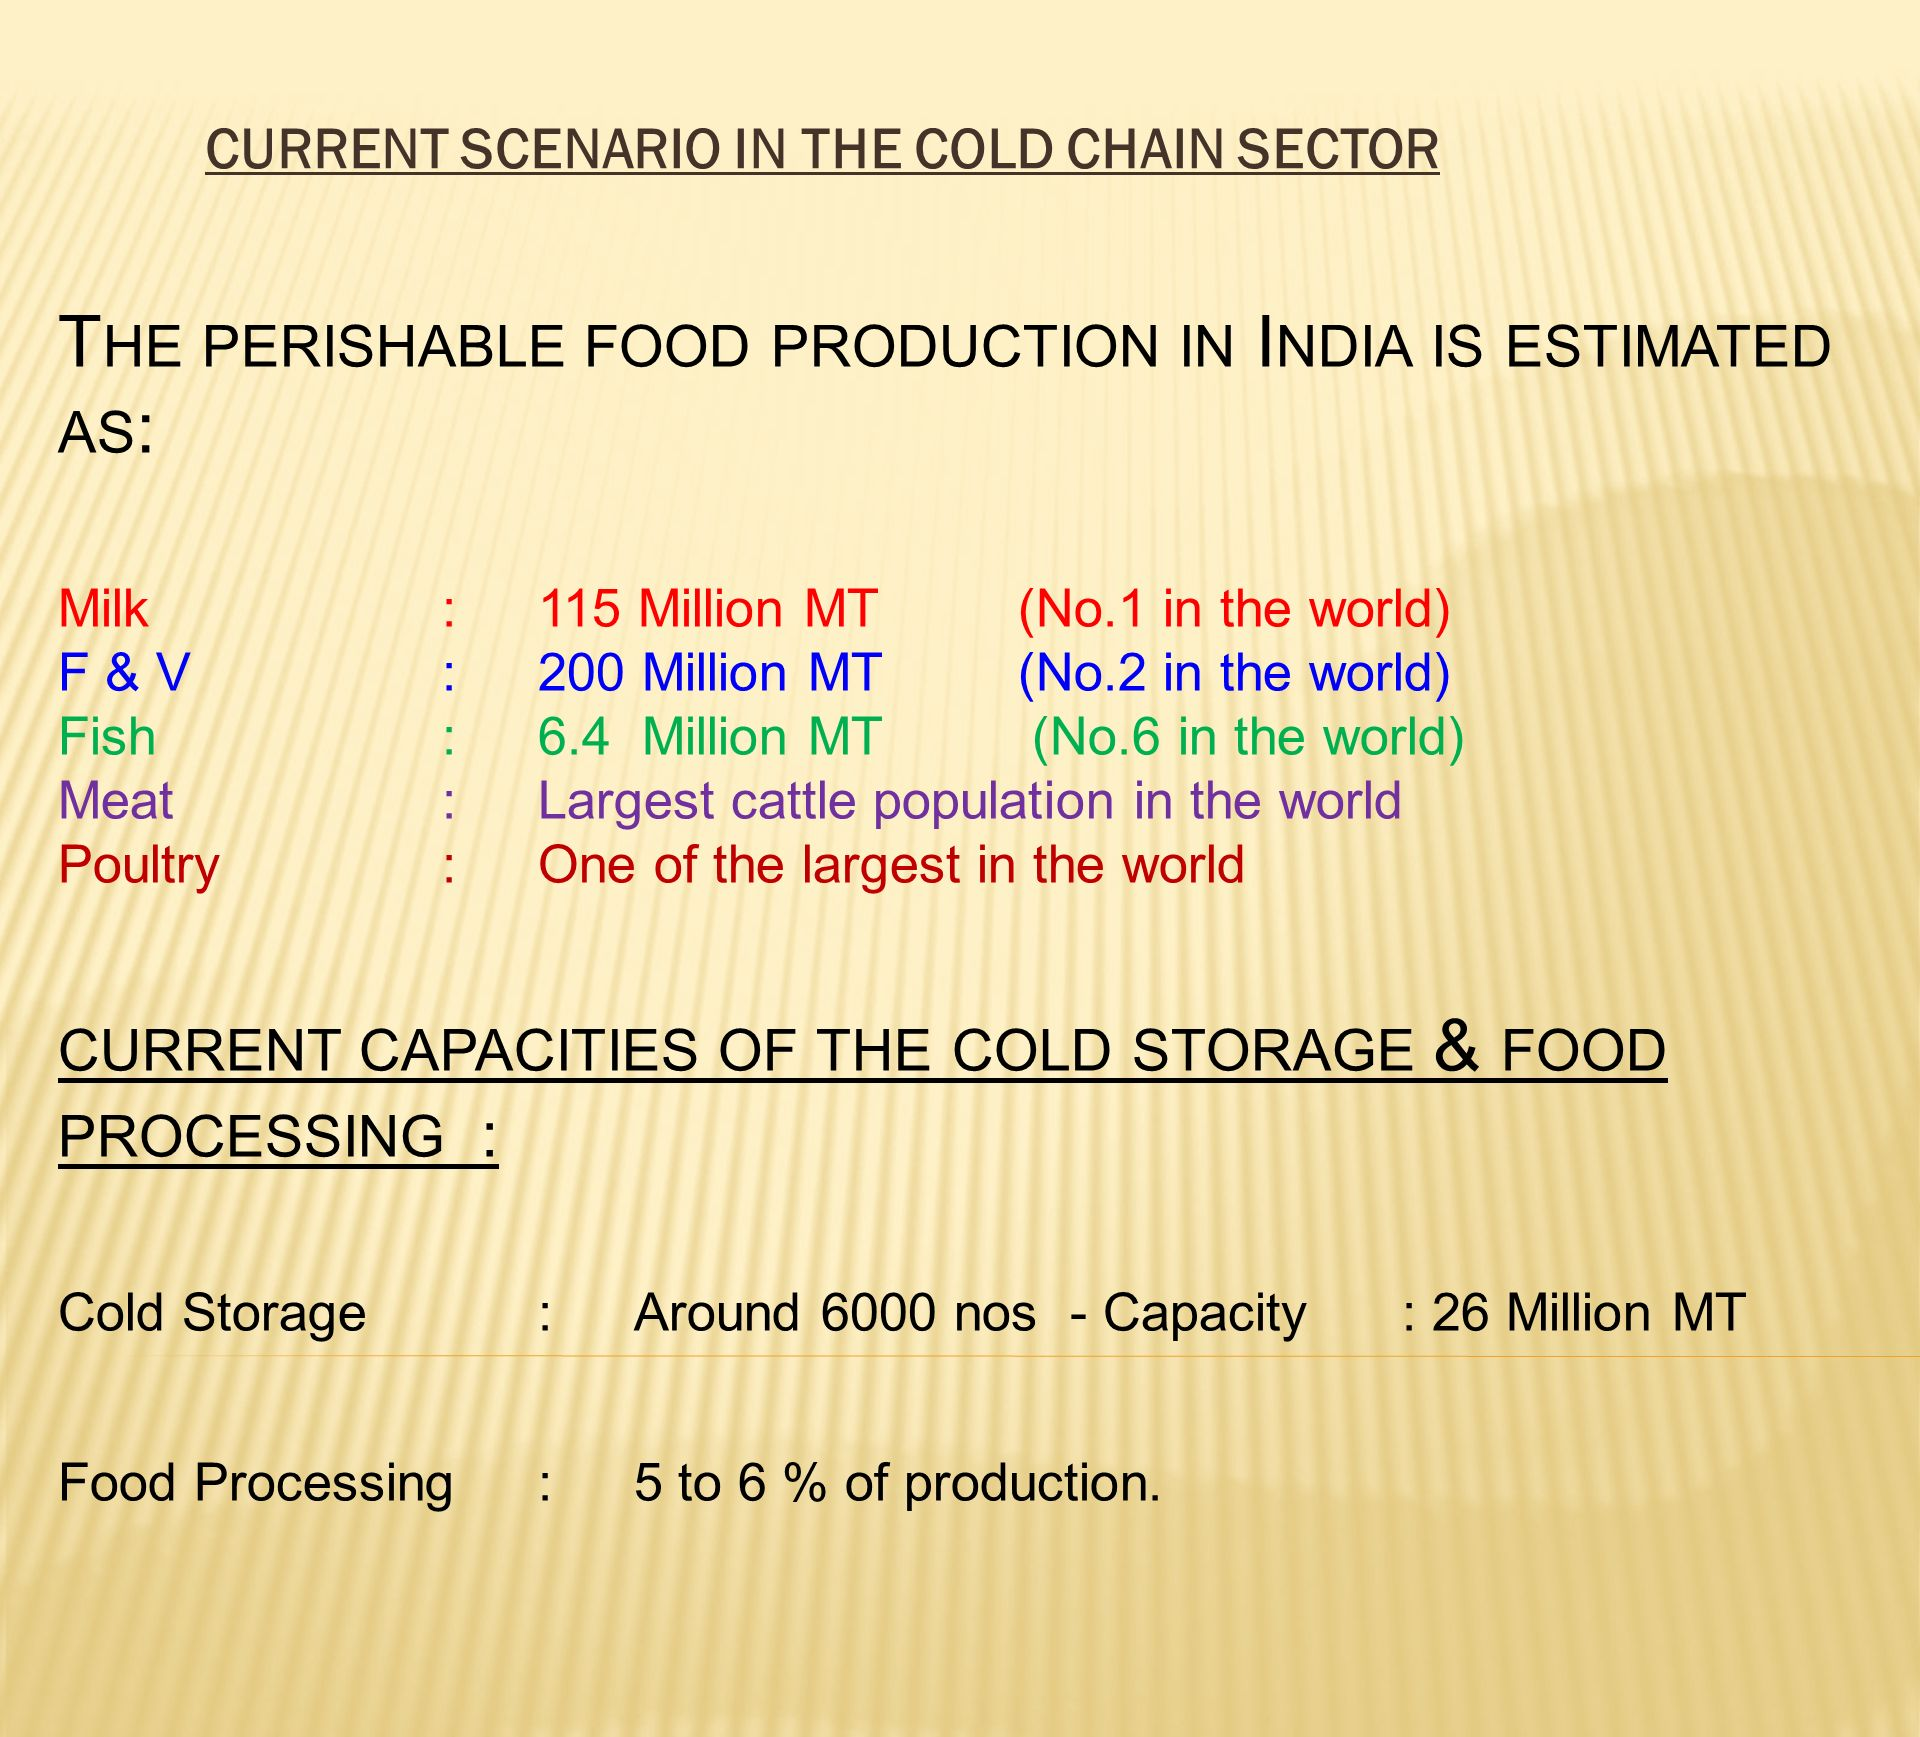 Current scenario in the Cold Chain sector